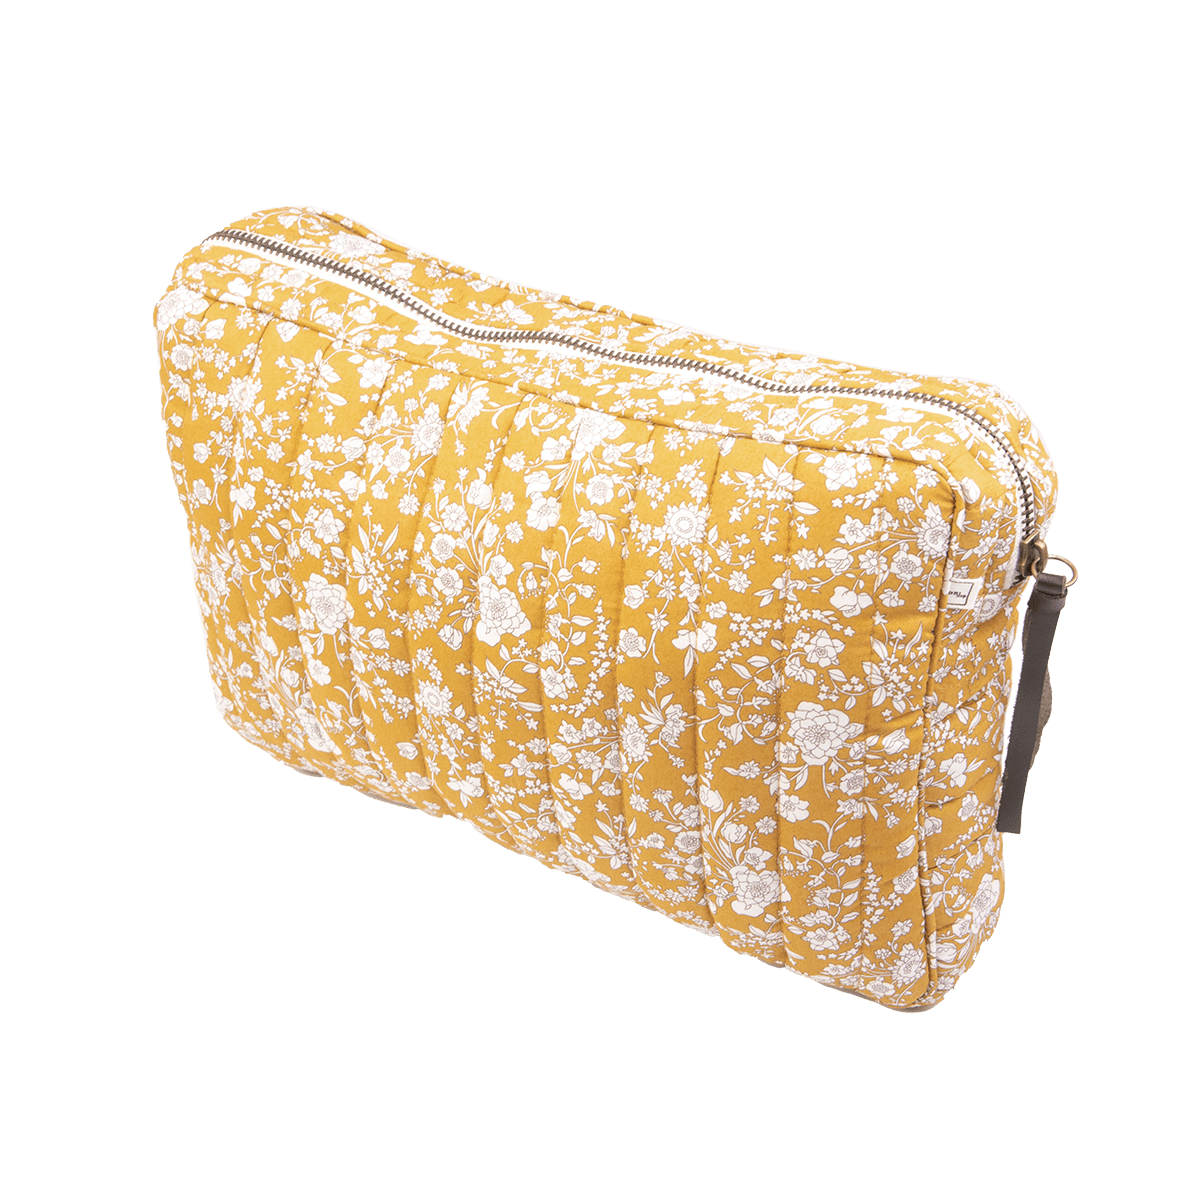 BON DEP Liberty Pouch big - Summer bloom -